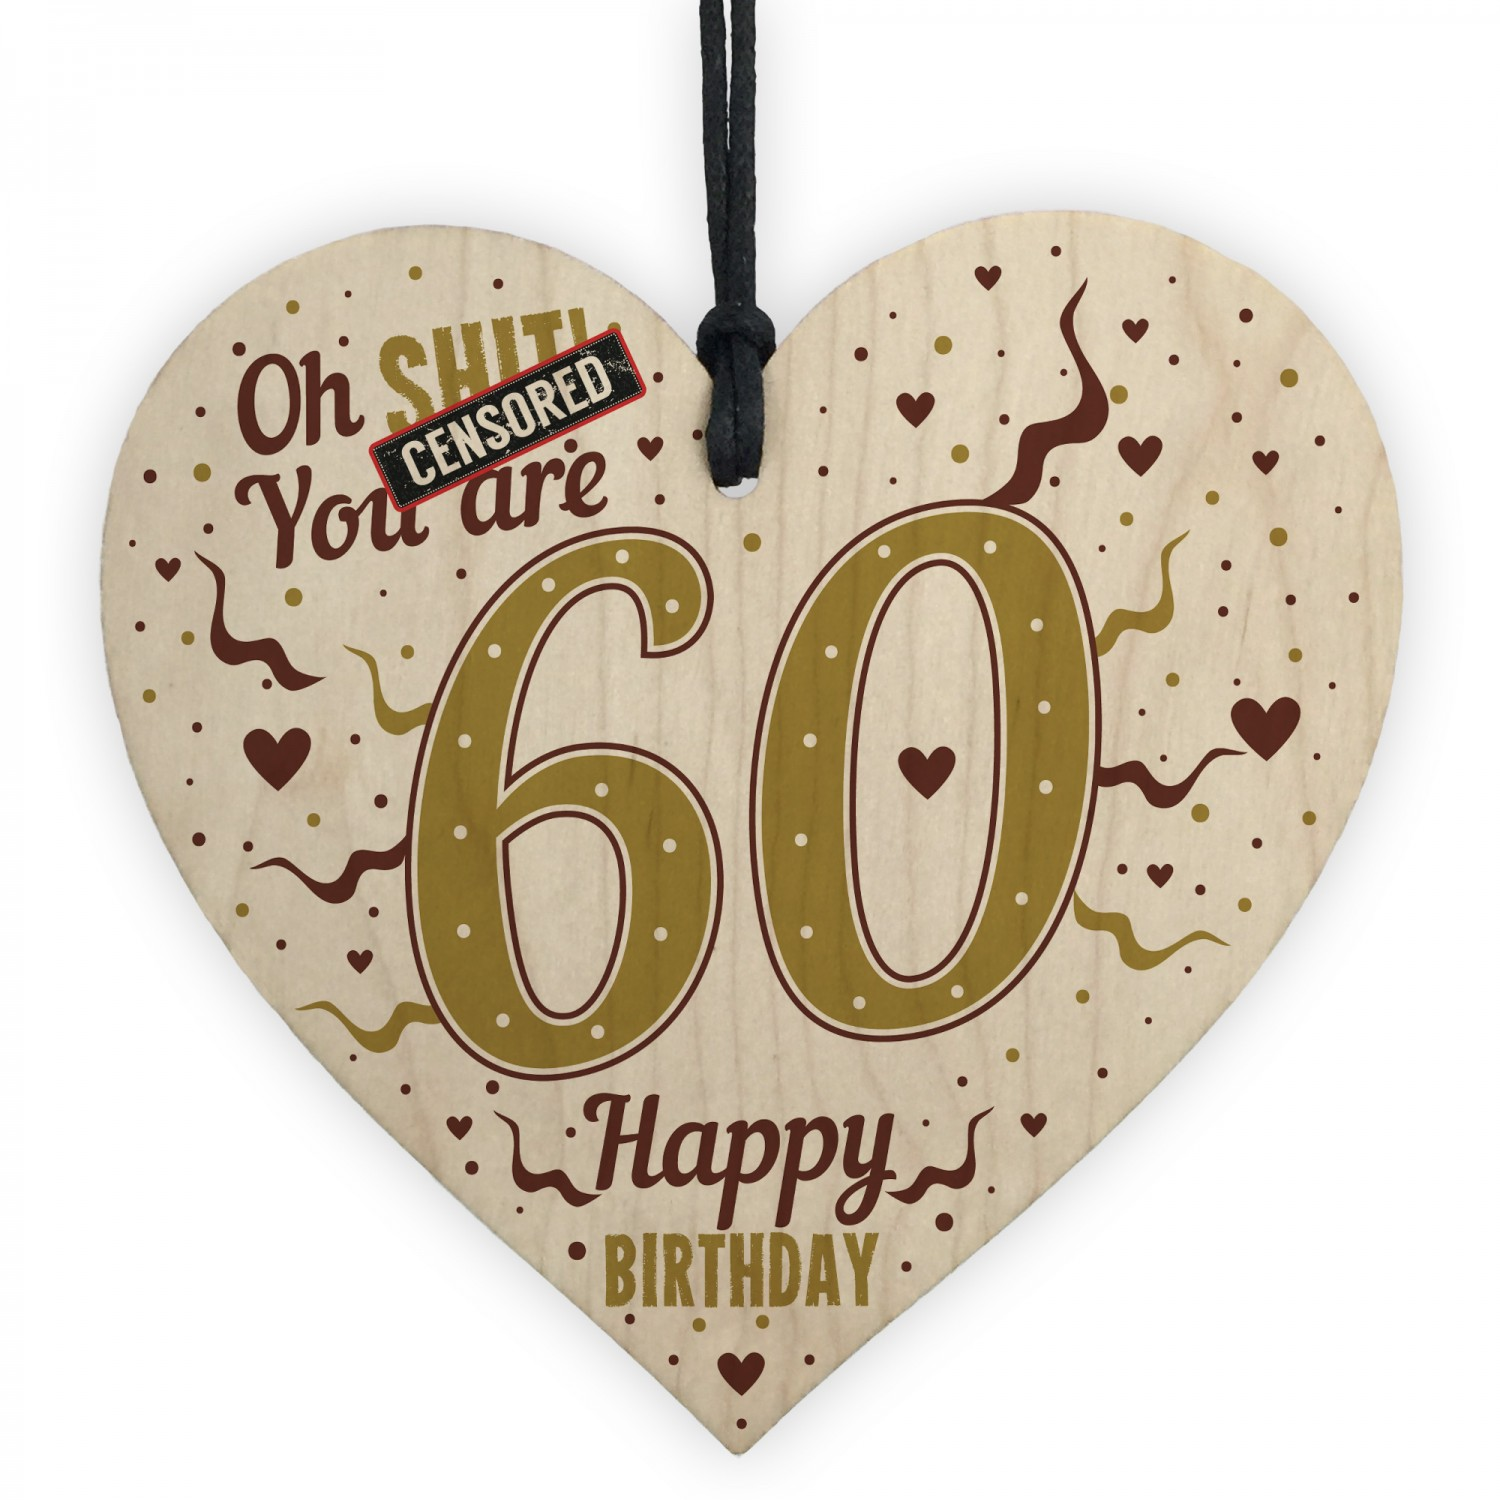 60th Birthday Gifts For Women 60th Birthday Gifts For Men Heart